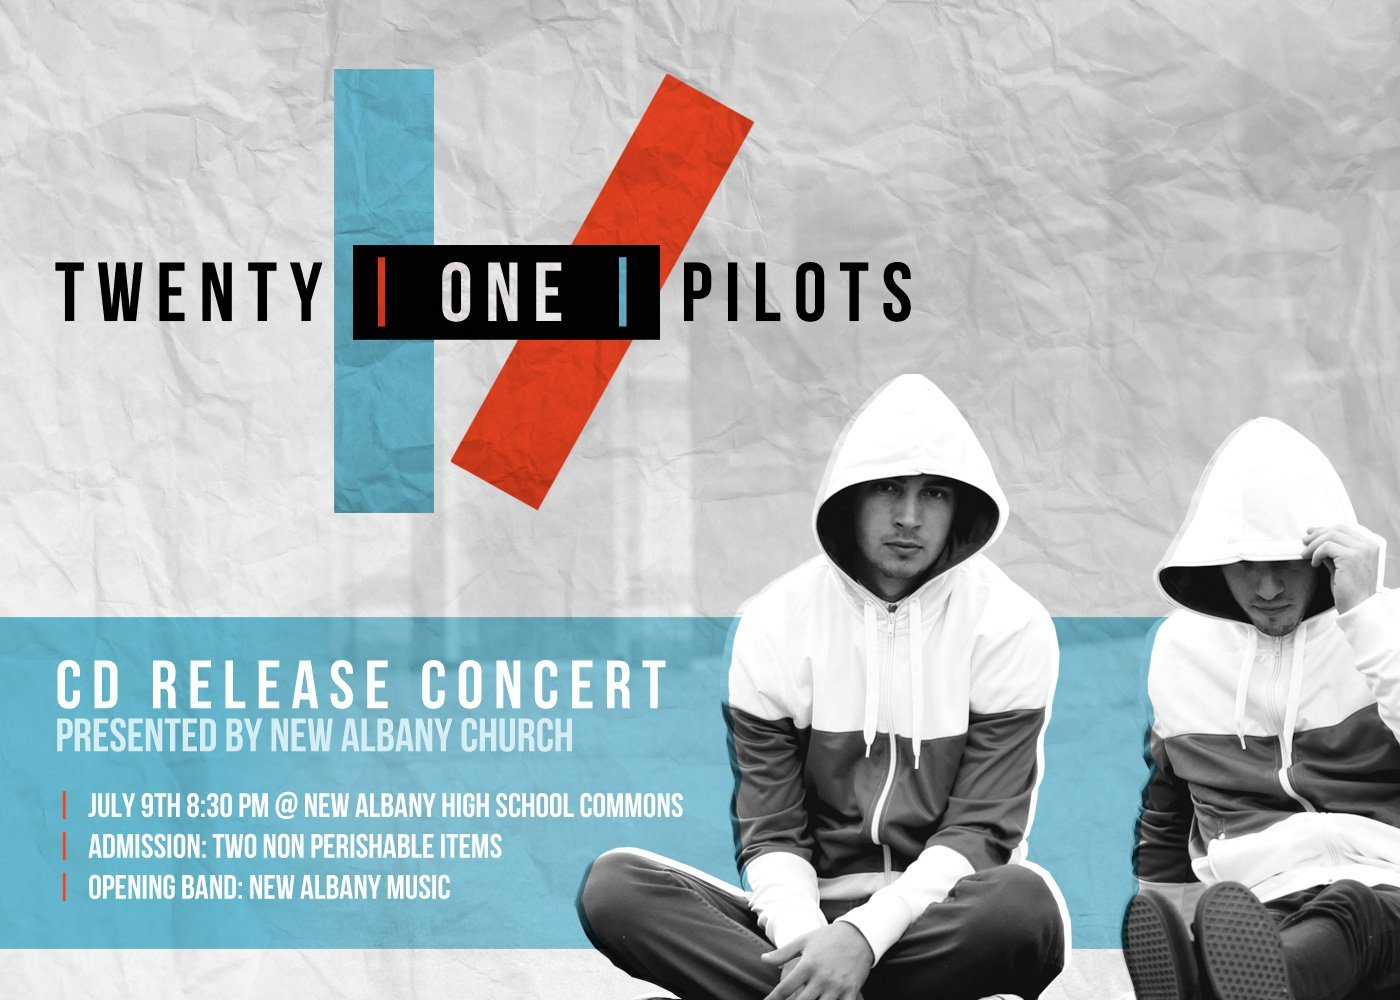 Twenty one pilots new album release date in Australia